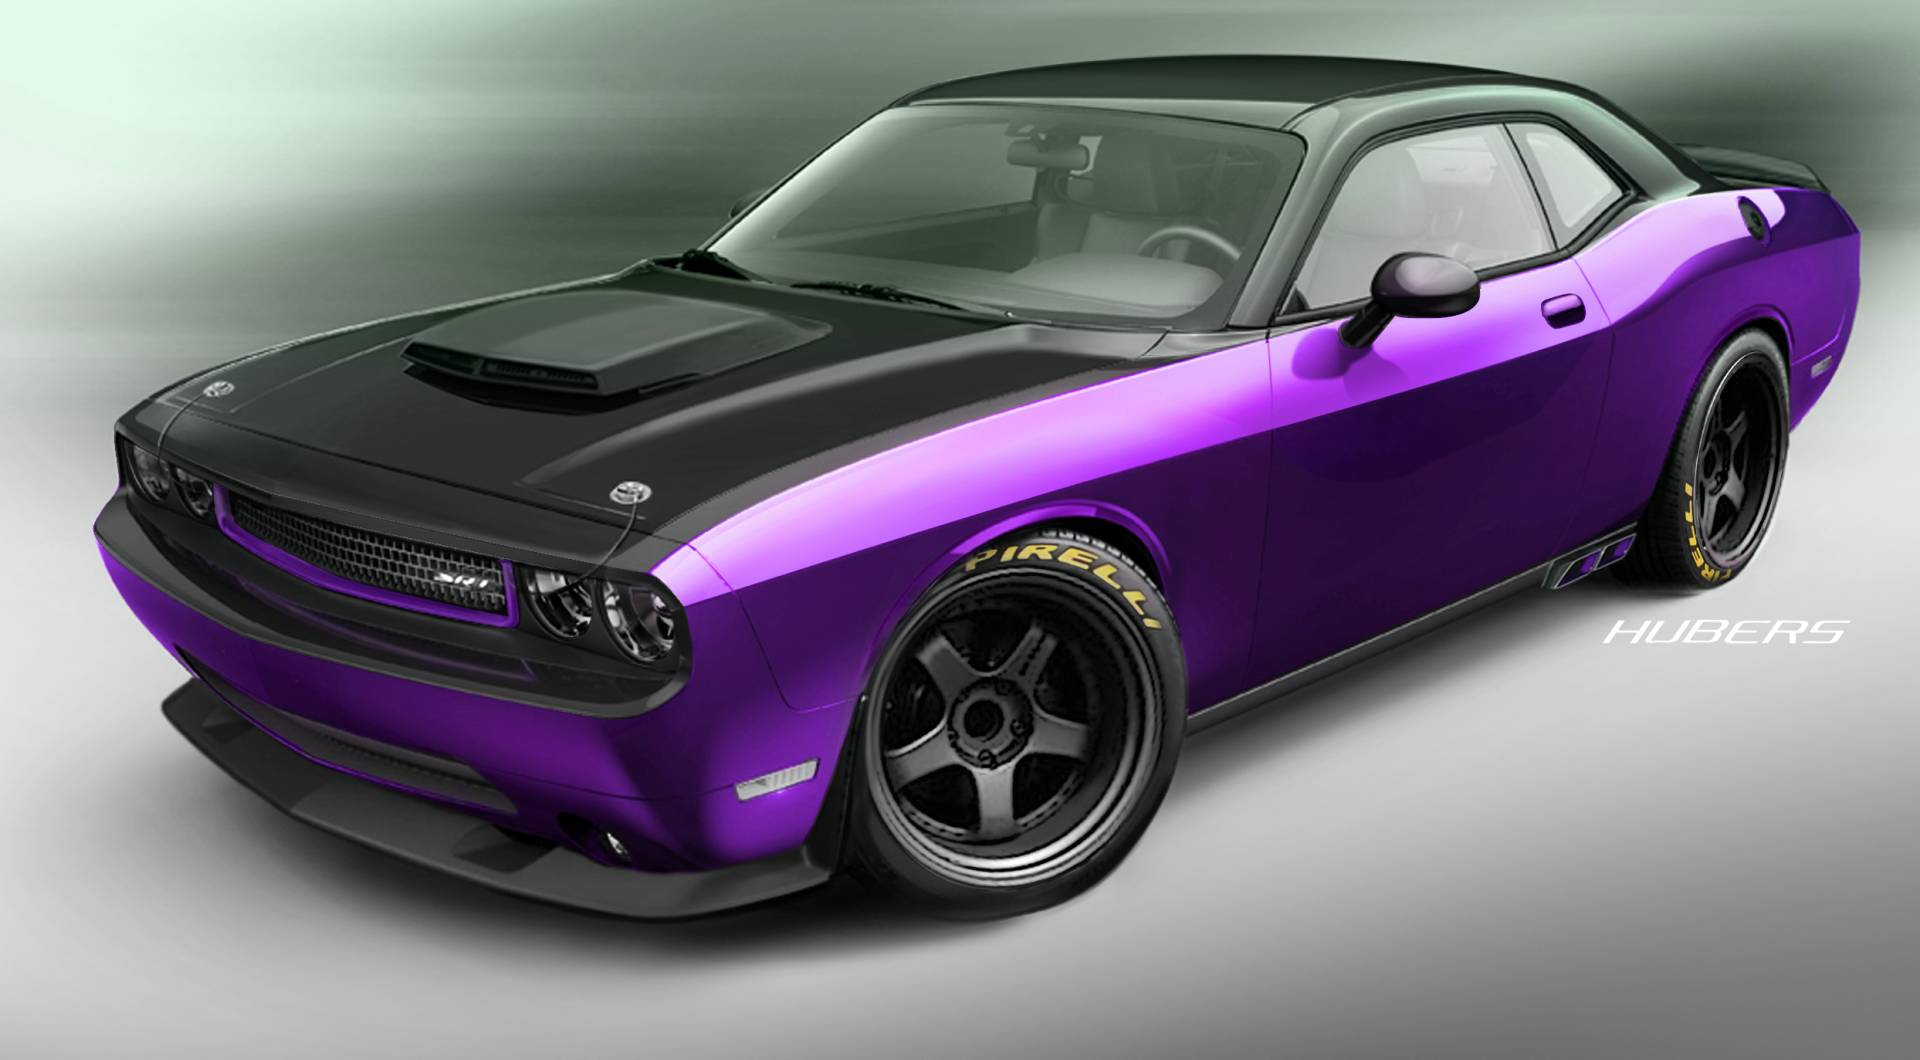 2012 dodge challenger srt8 jeff dunham project ultraviolet. Black Bedroom Furniture Sets. Home Design Ideas